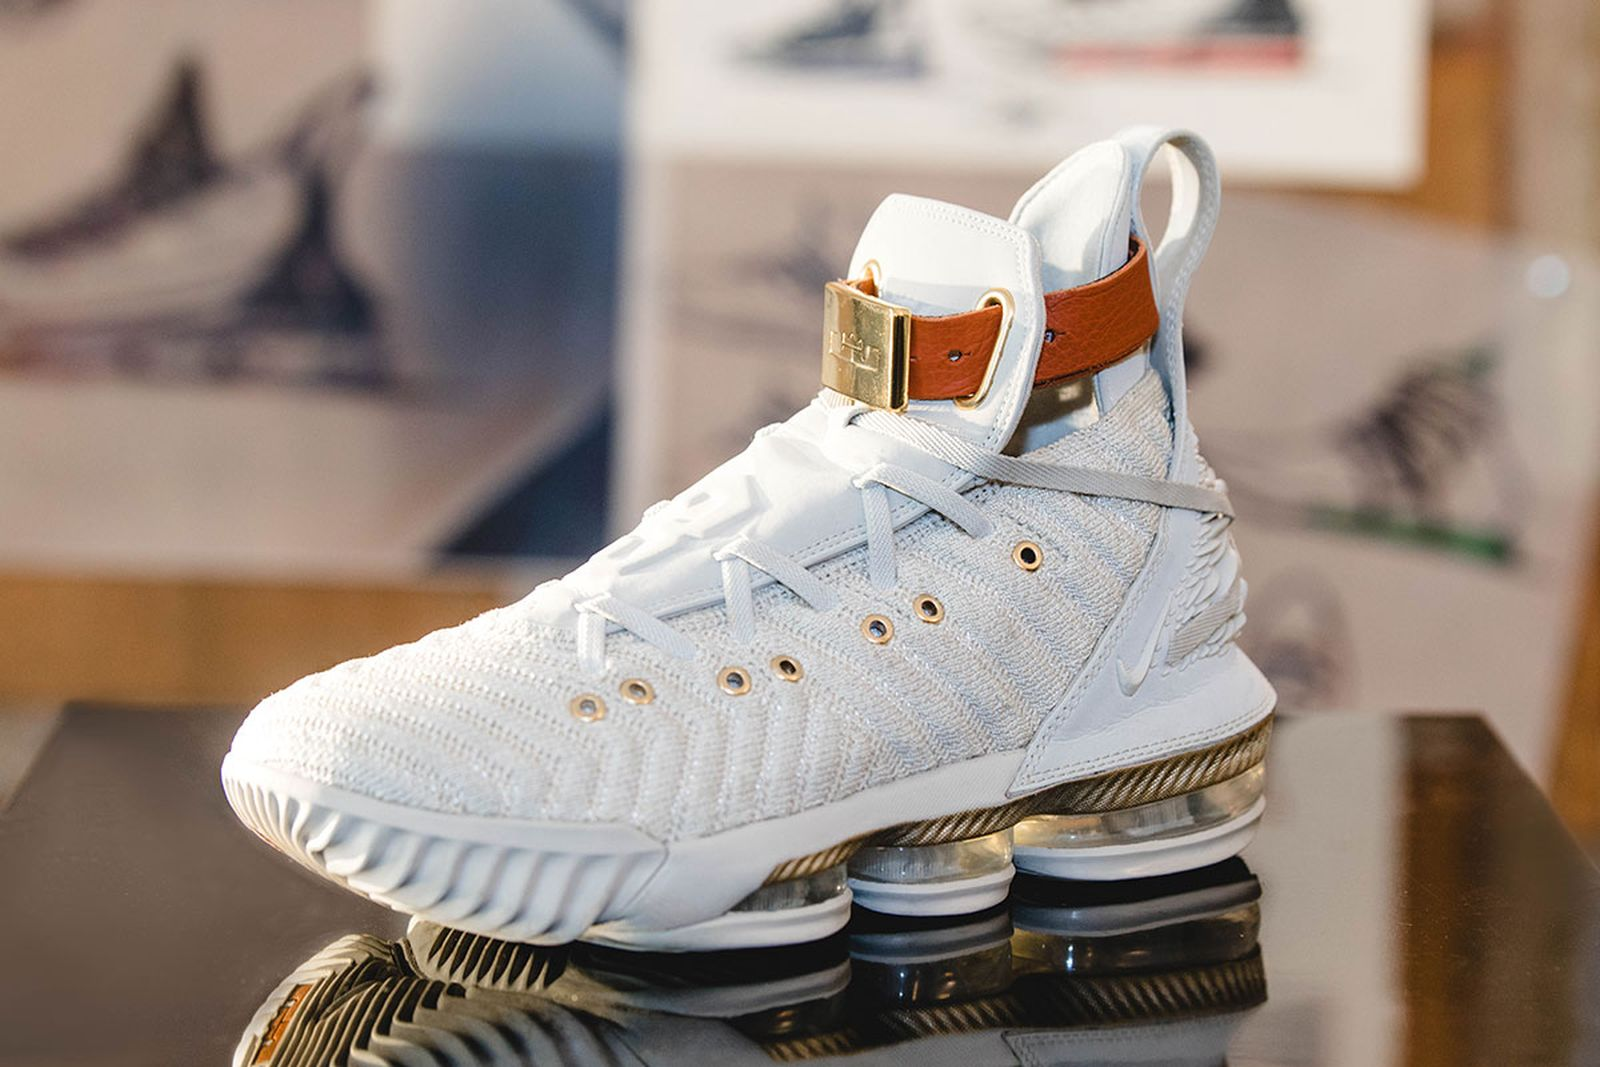 """Nike LeBron 16 """"Harlem's Fashion Row"""": How & When To Buy It"""